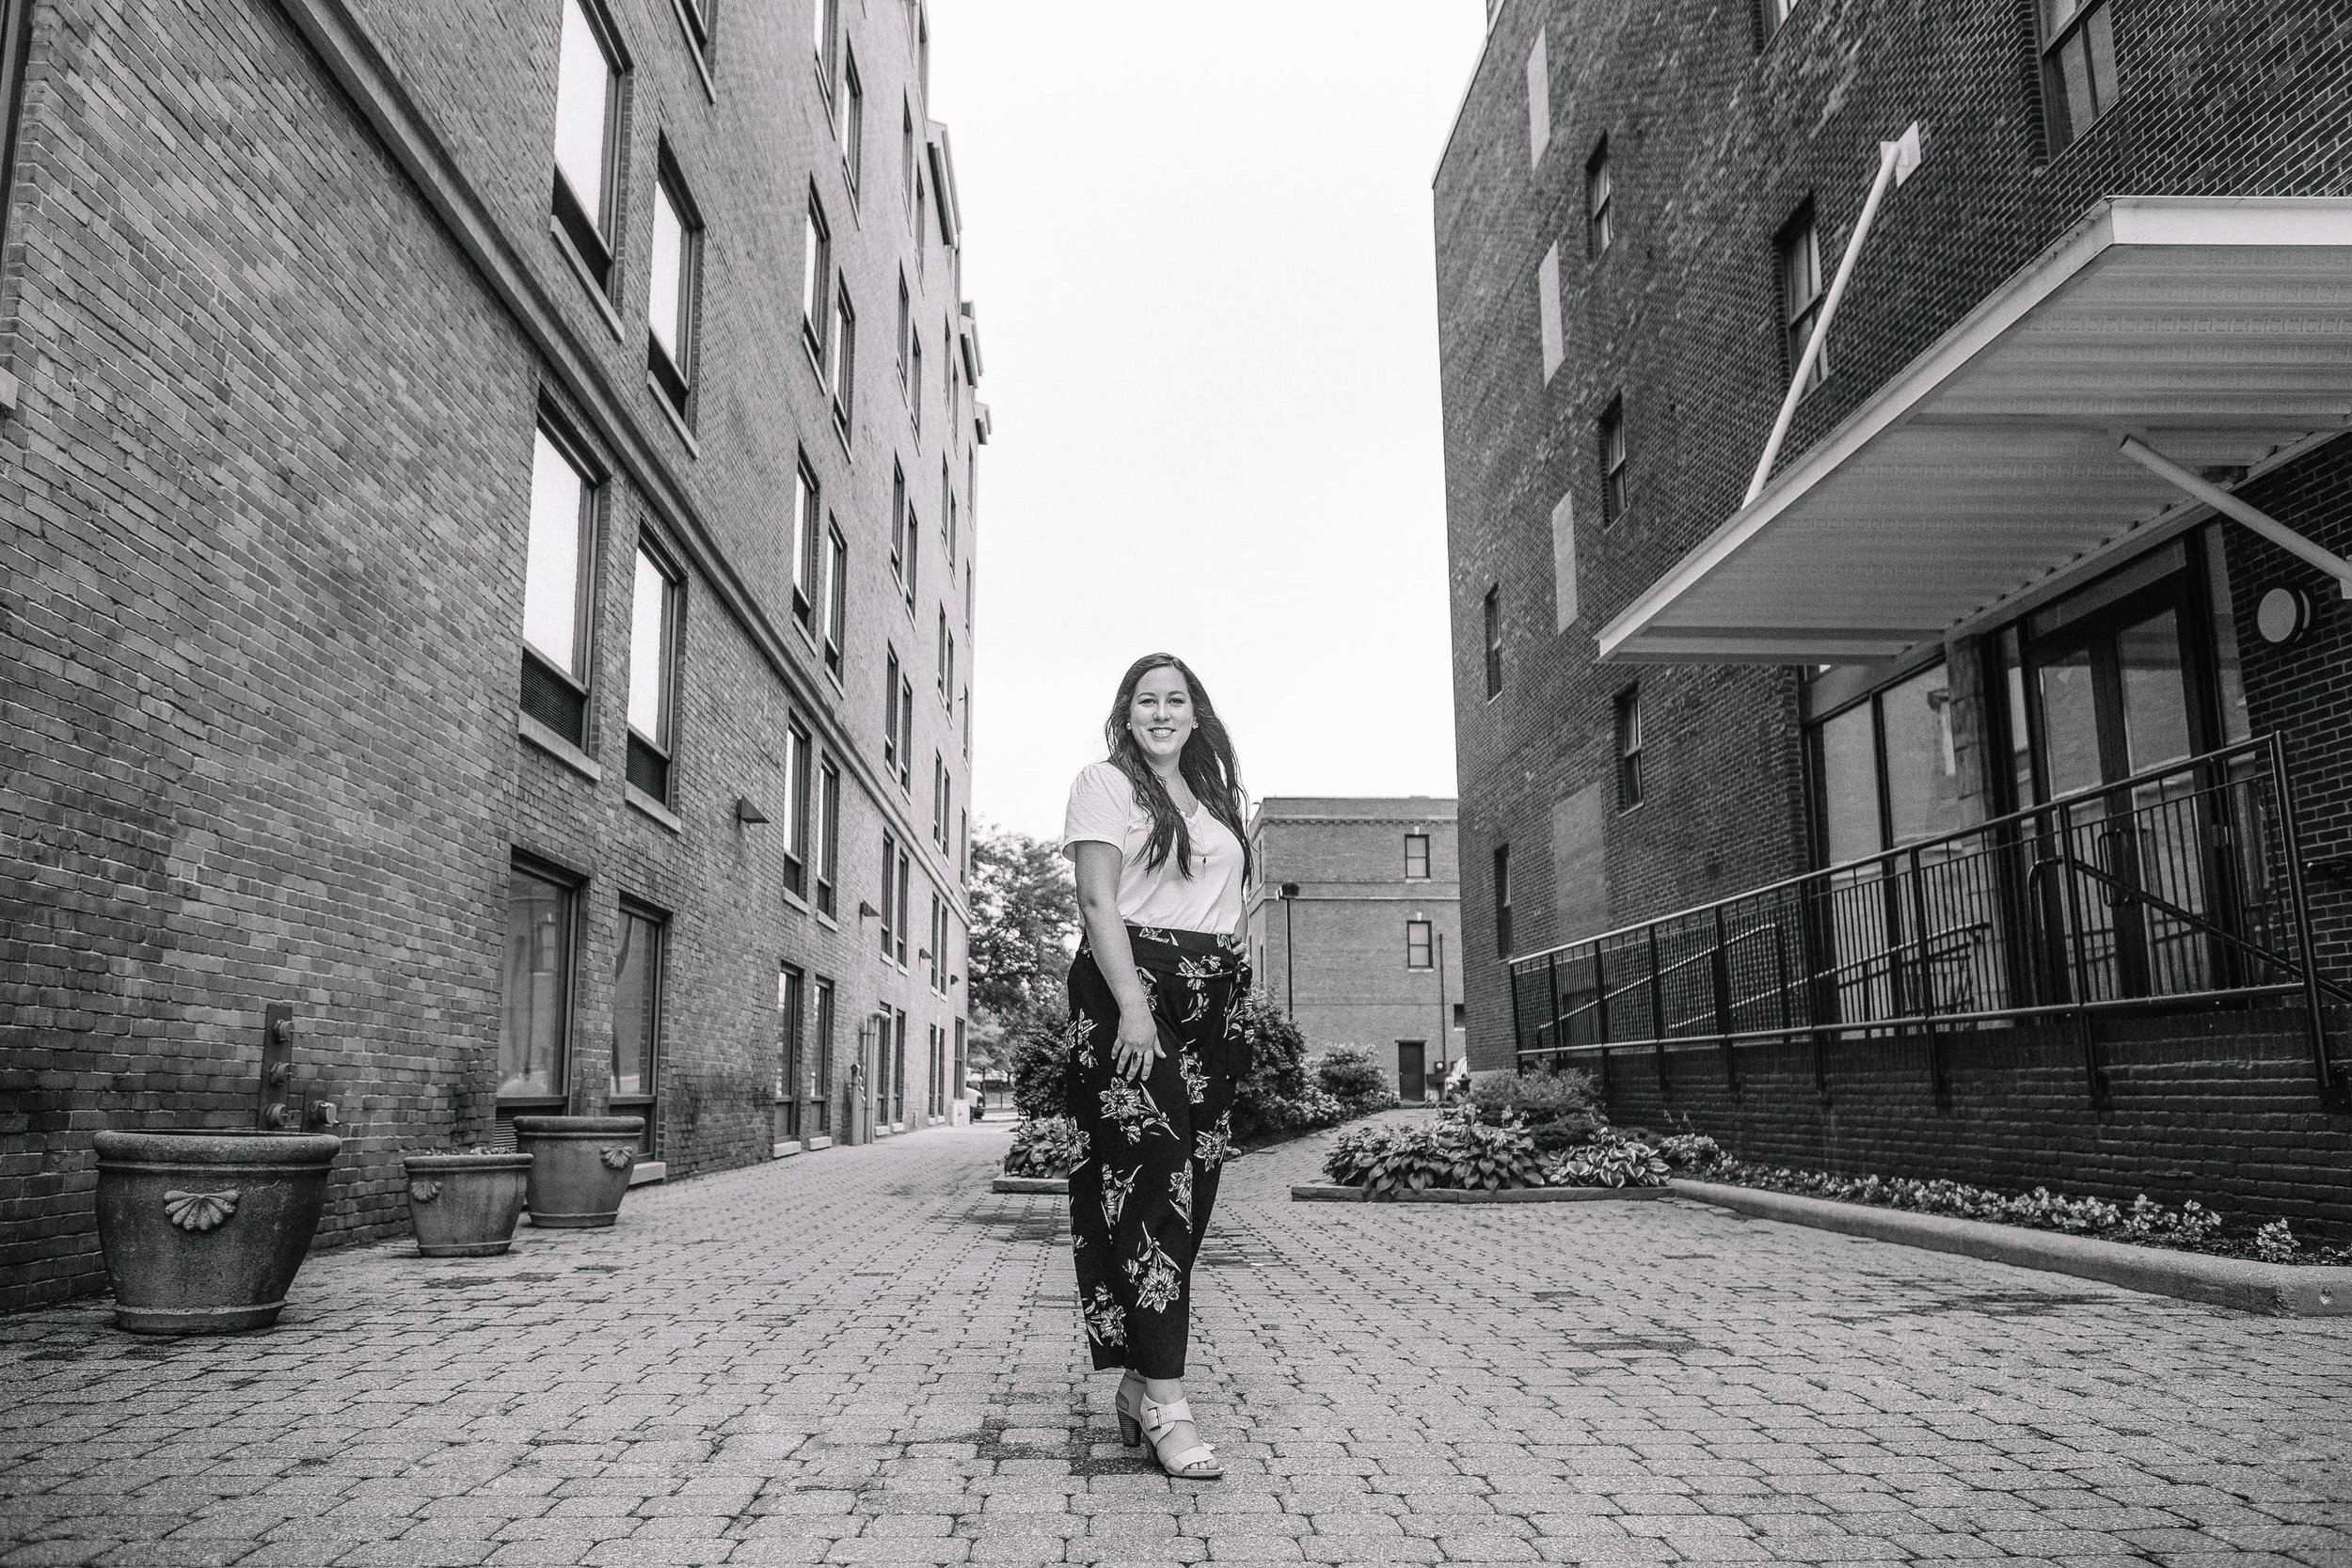 We visited Kirsten in the Gerber LLC office in Columbus, OH to discuss everythingfrom her experiences in marketingto the phenomenon of Instagram influencers. -